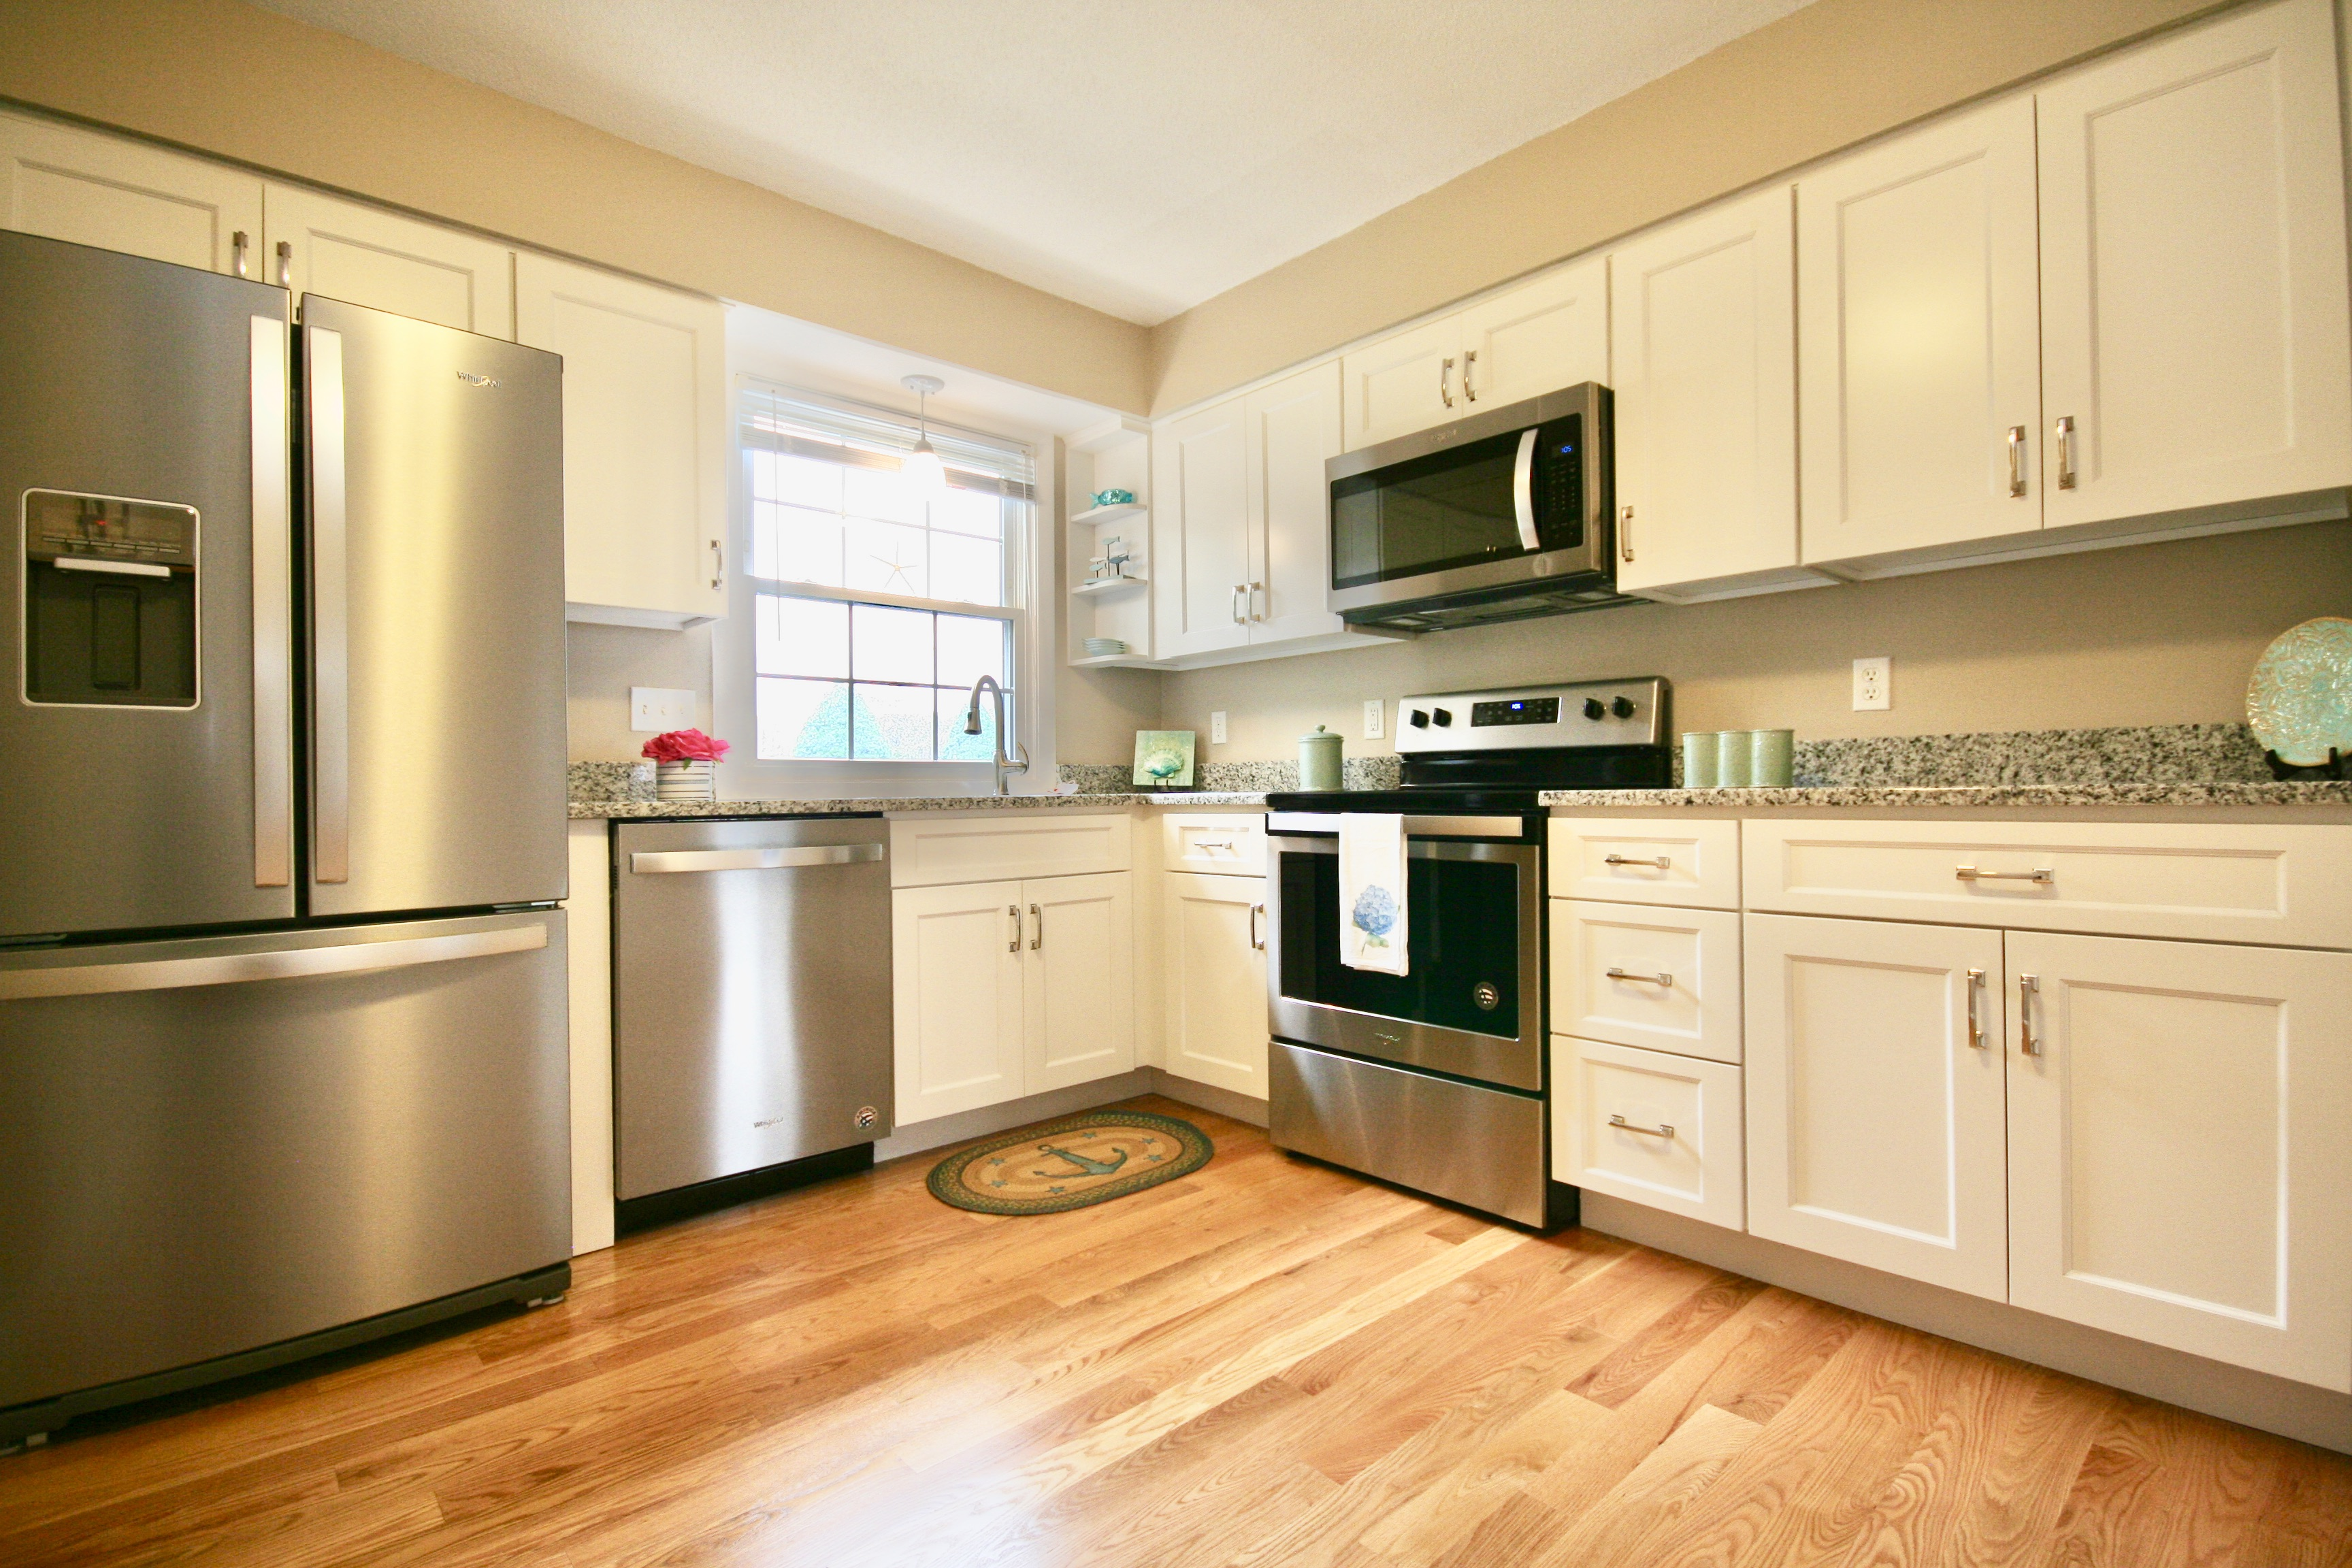 231 Route 28, West Harwich, MA 02671